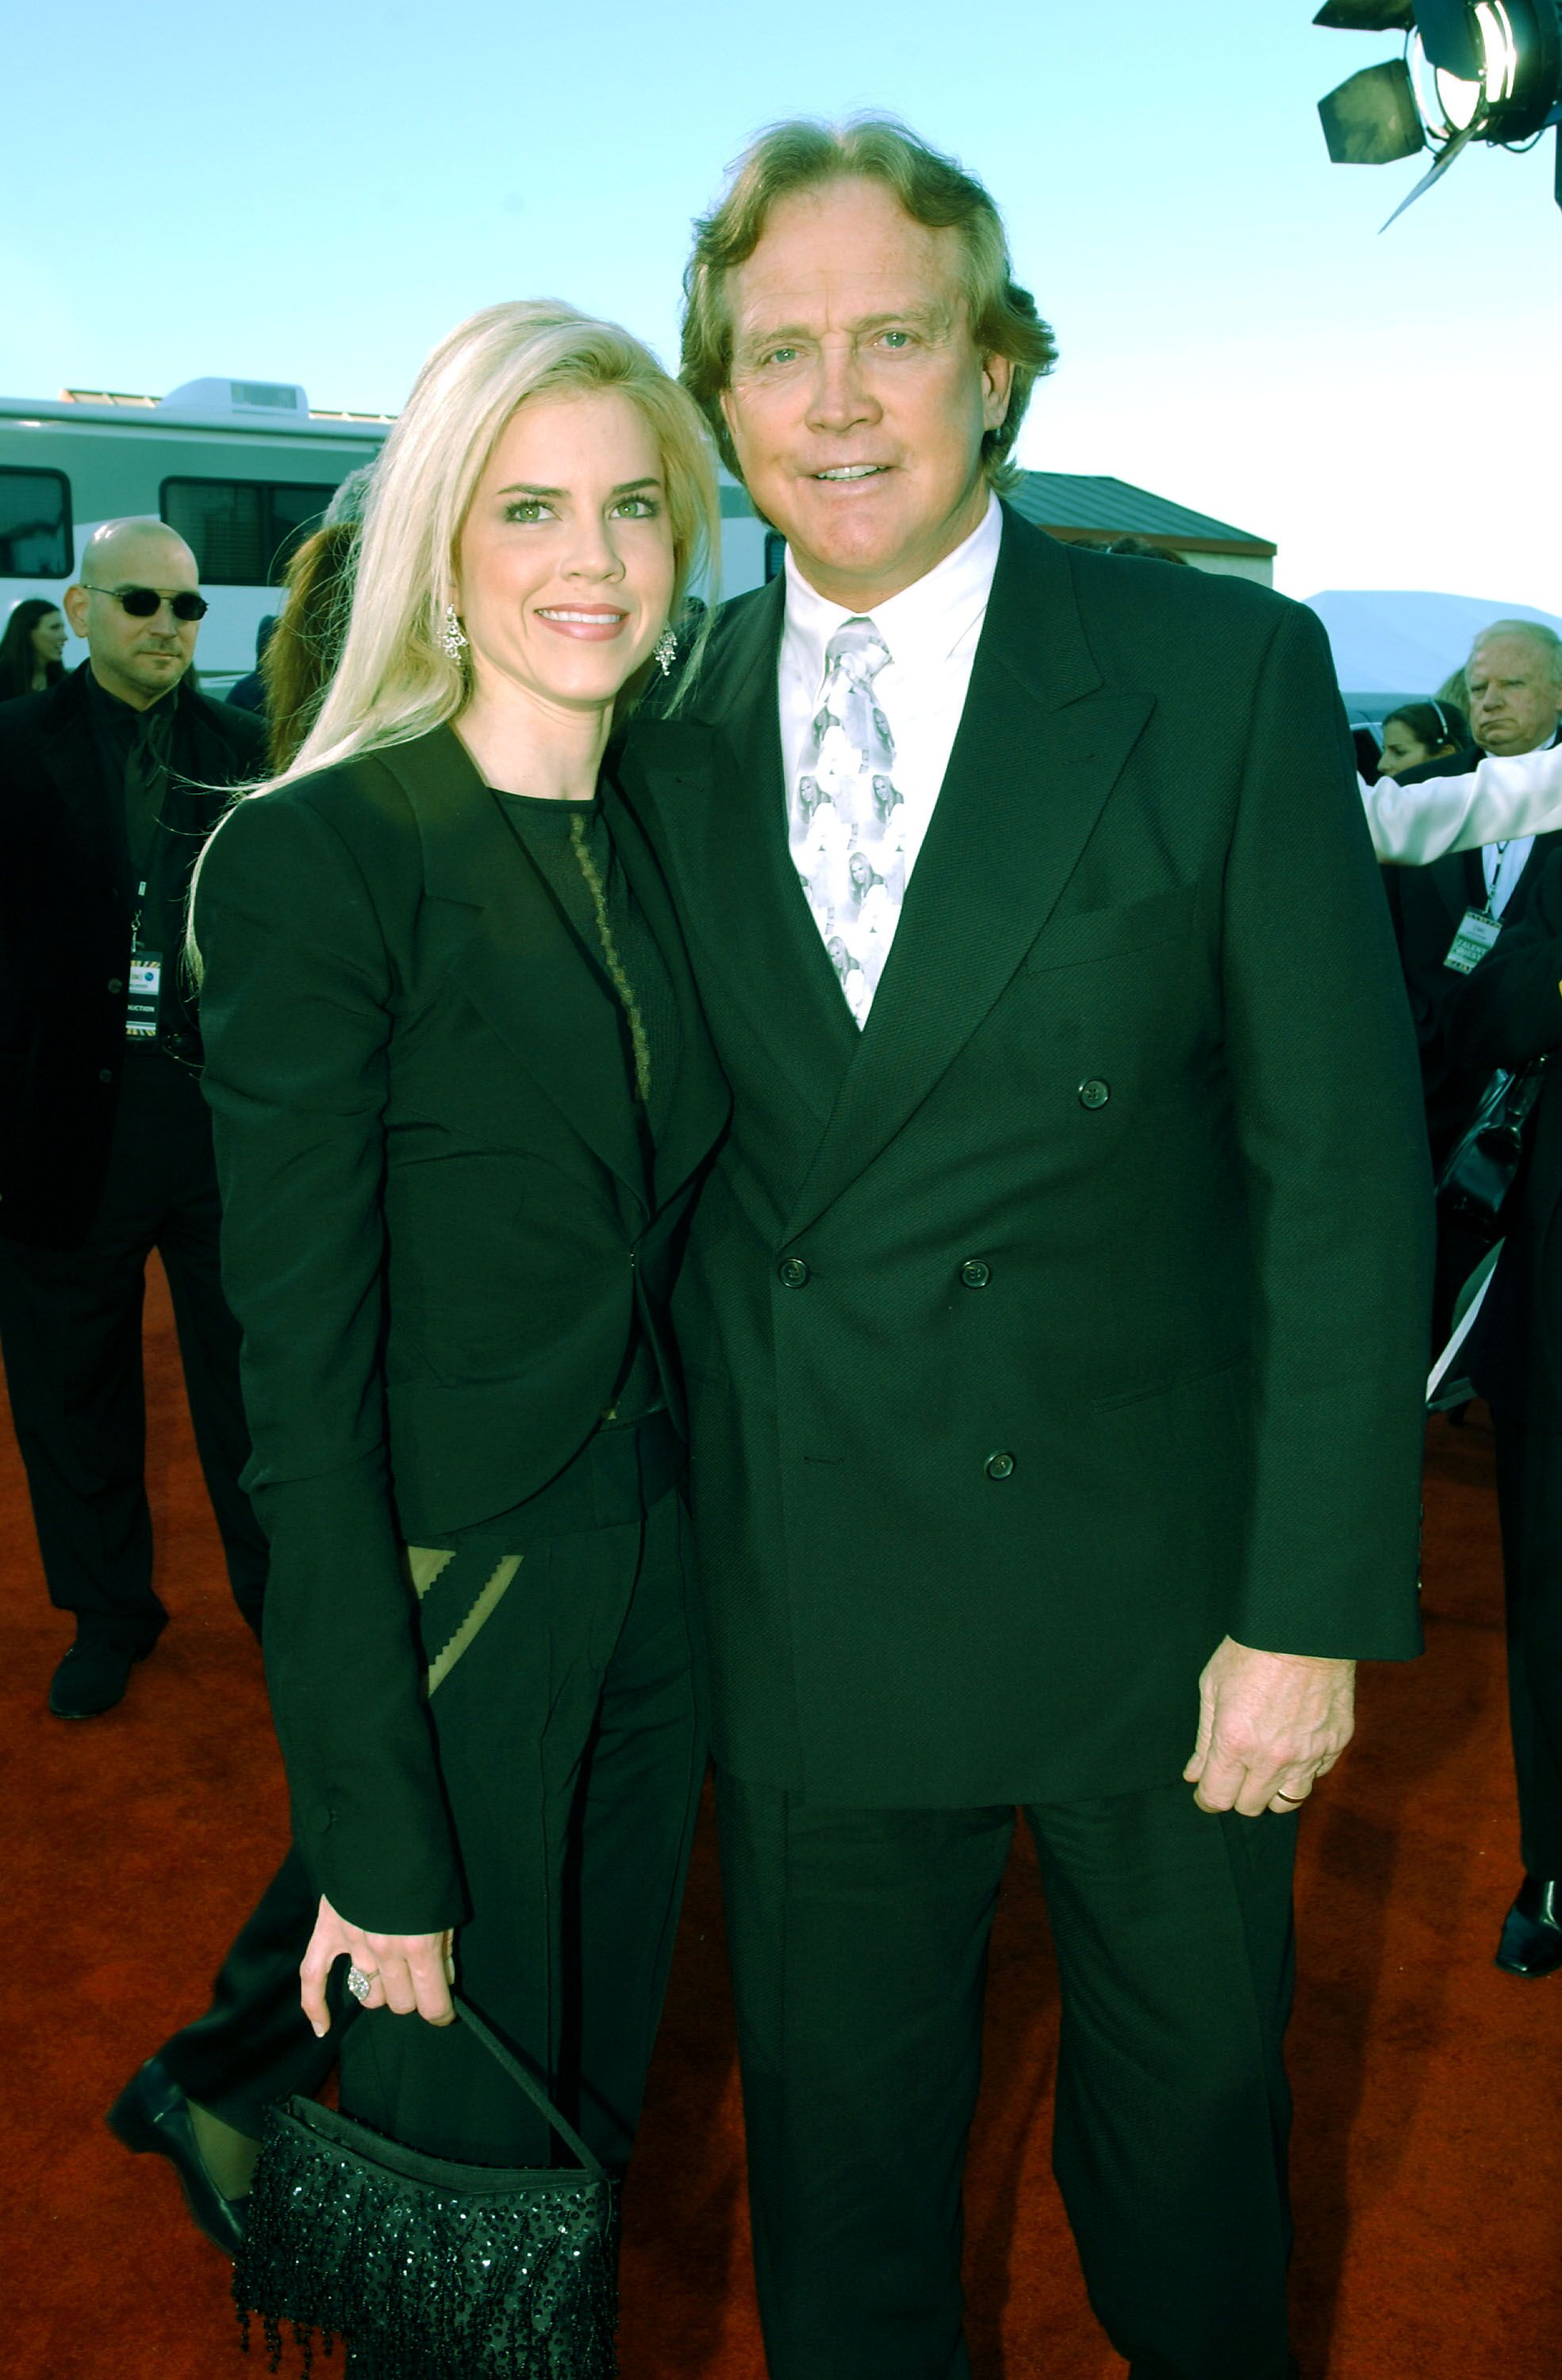 Actor Lee Majors and his wife Faith attend the TV Land Awards 2003 at the Hollywood Palladium on March 2, 2003 in Hollywood, California | Photo: Getty Images